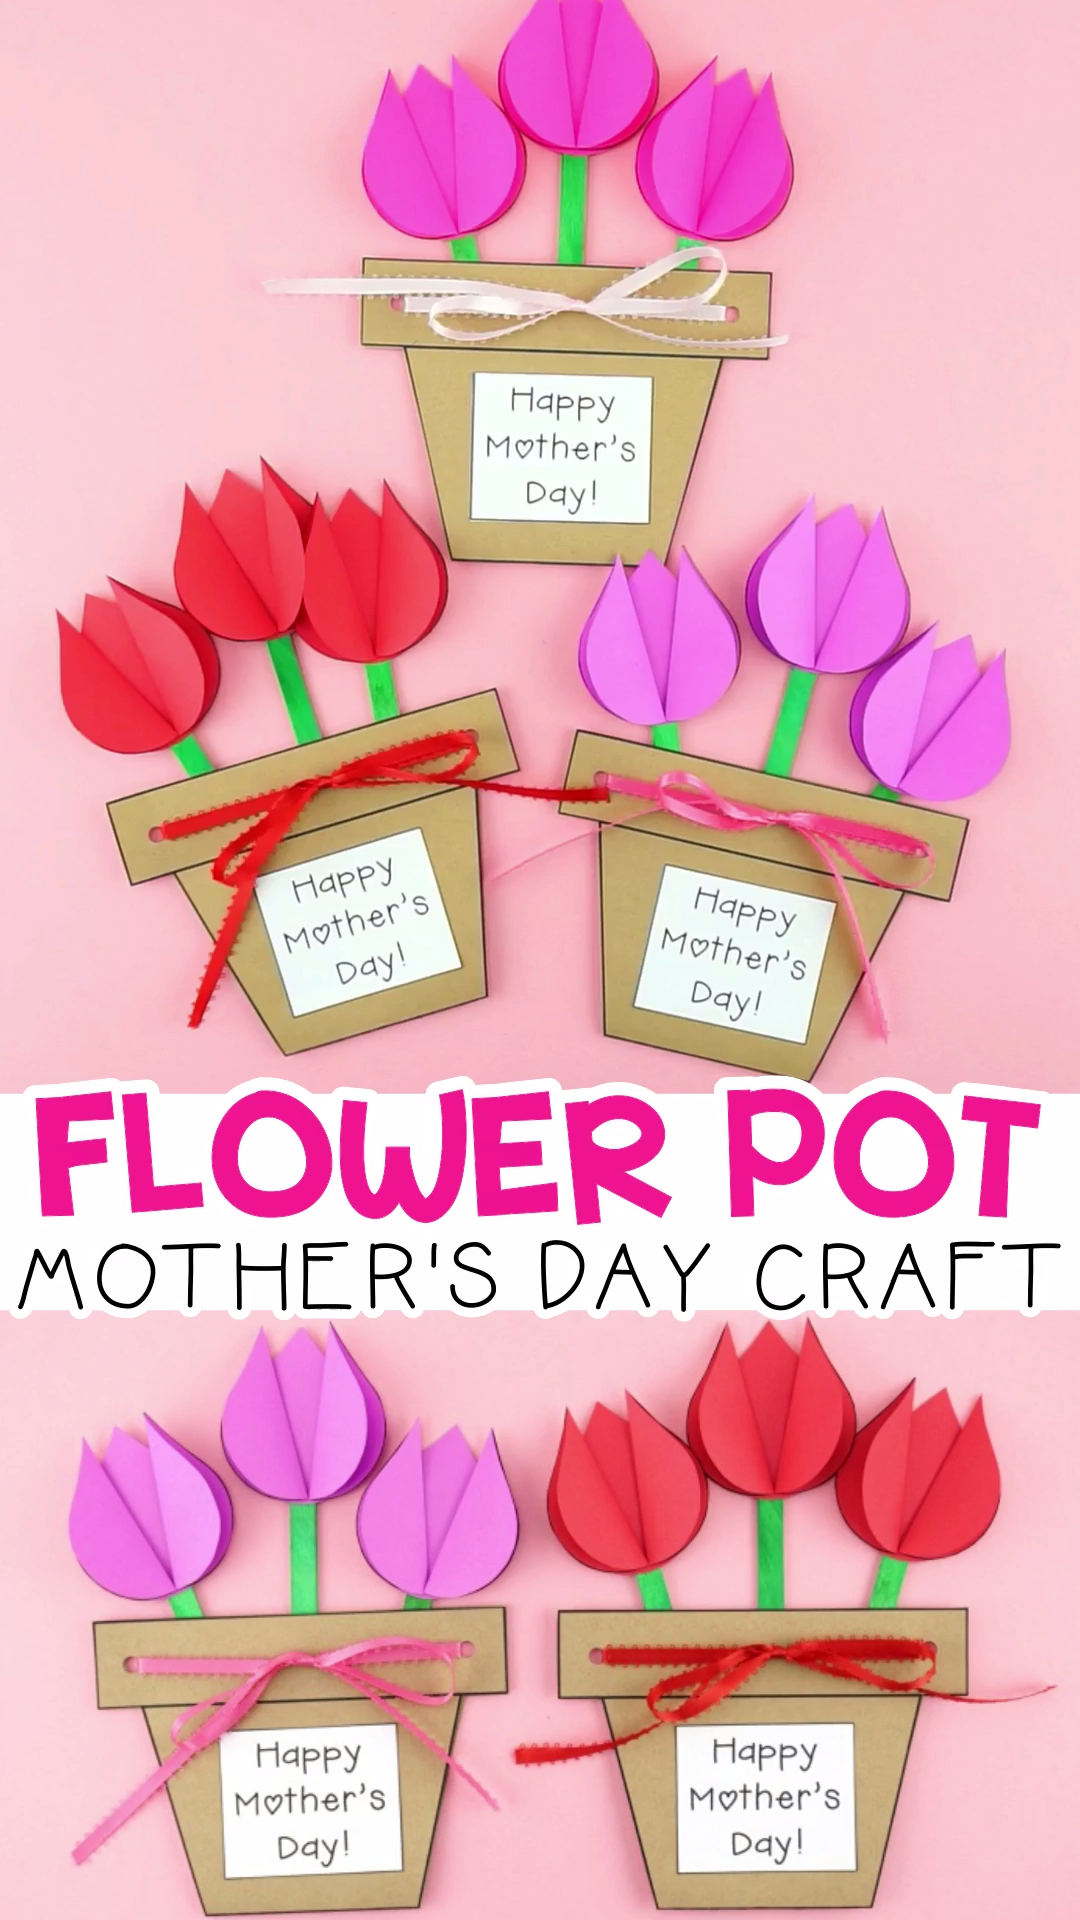 Mother S Day Flower Pot Craft Easy Gift For Kids To Make For Mom Video Video Mothers Day Flower Pot Mothers Day Crafts For Kids Crafts For Kids